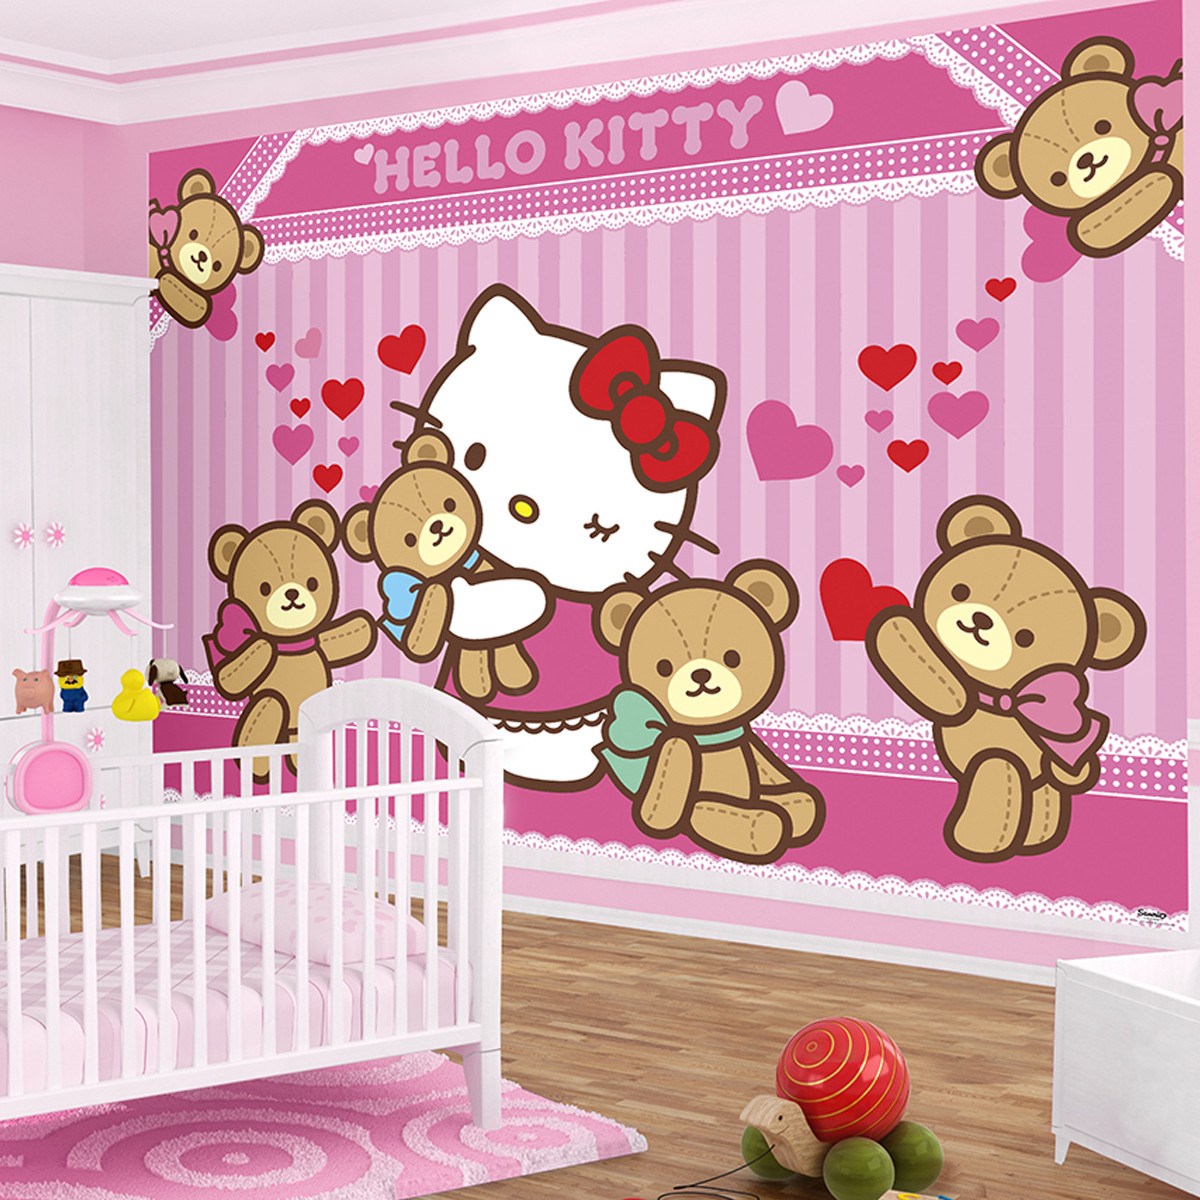 Papier Peint Ourson Hello Kitty Intissé - 104 x 70,5 cm